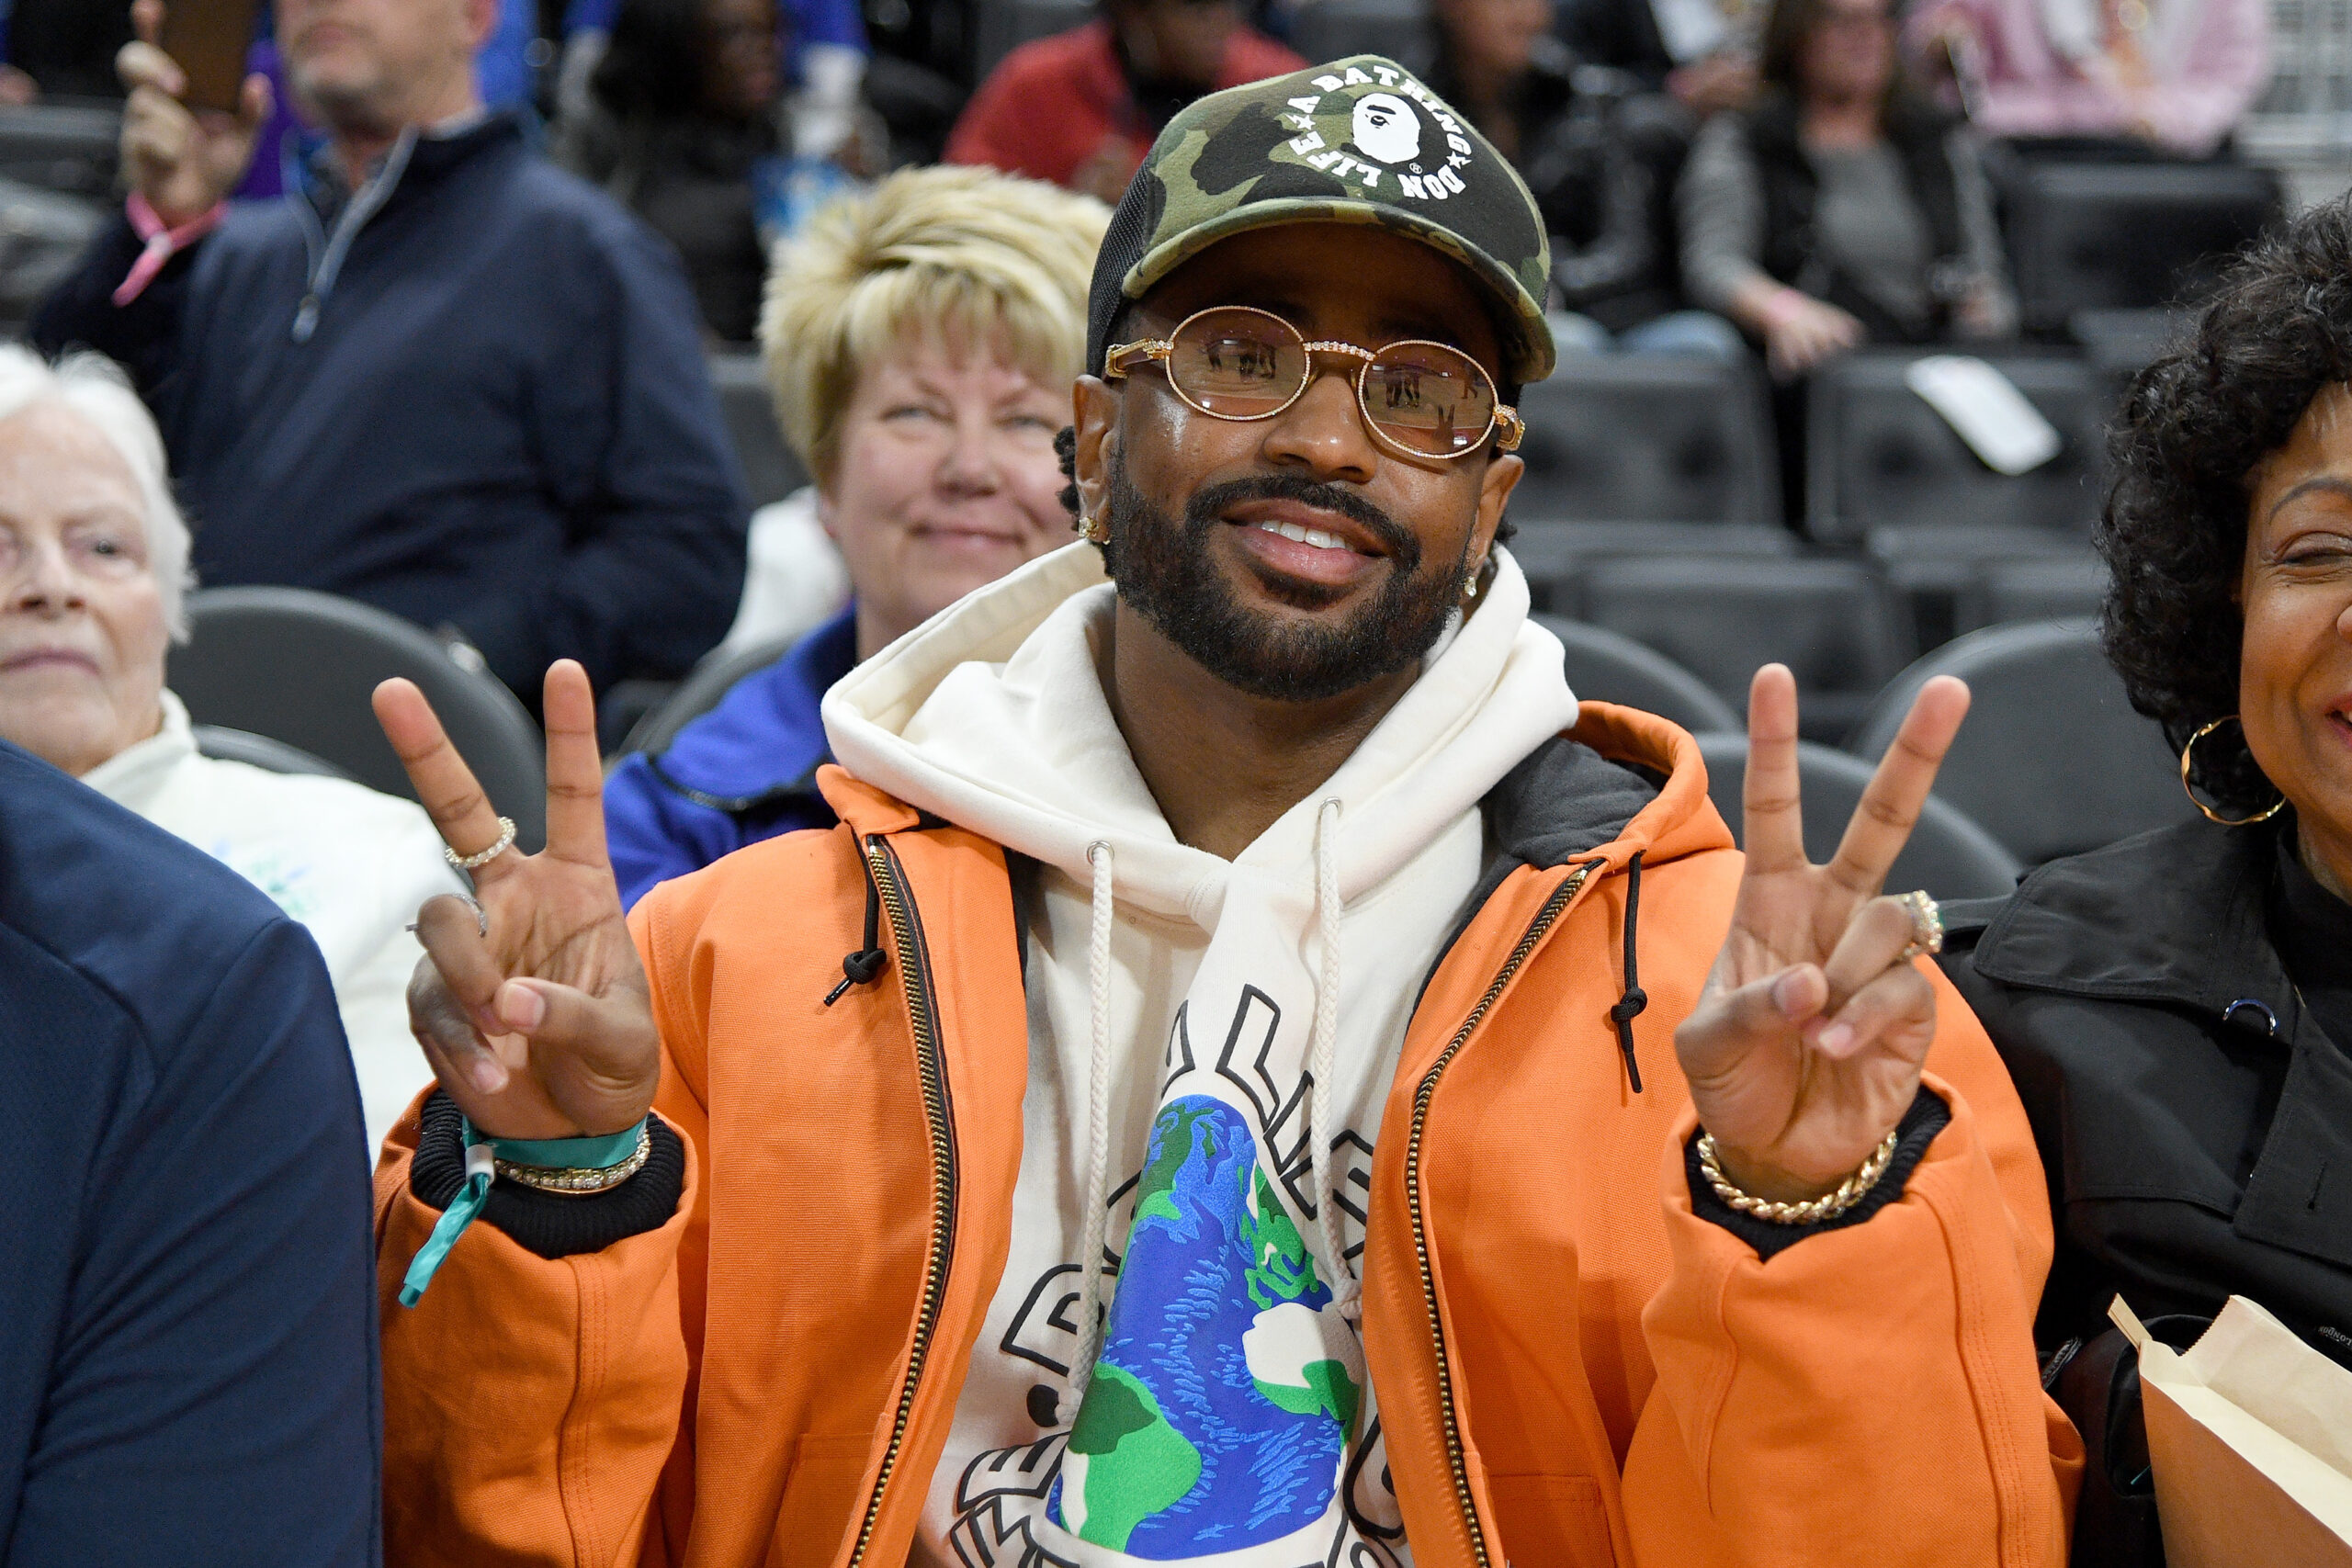 Big Sean joins Pistons as Creative Director of Innovation